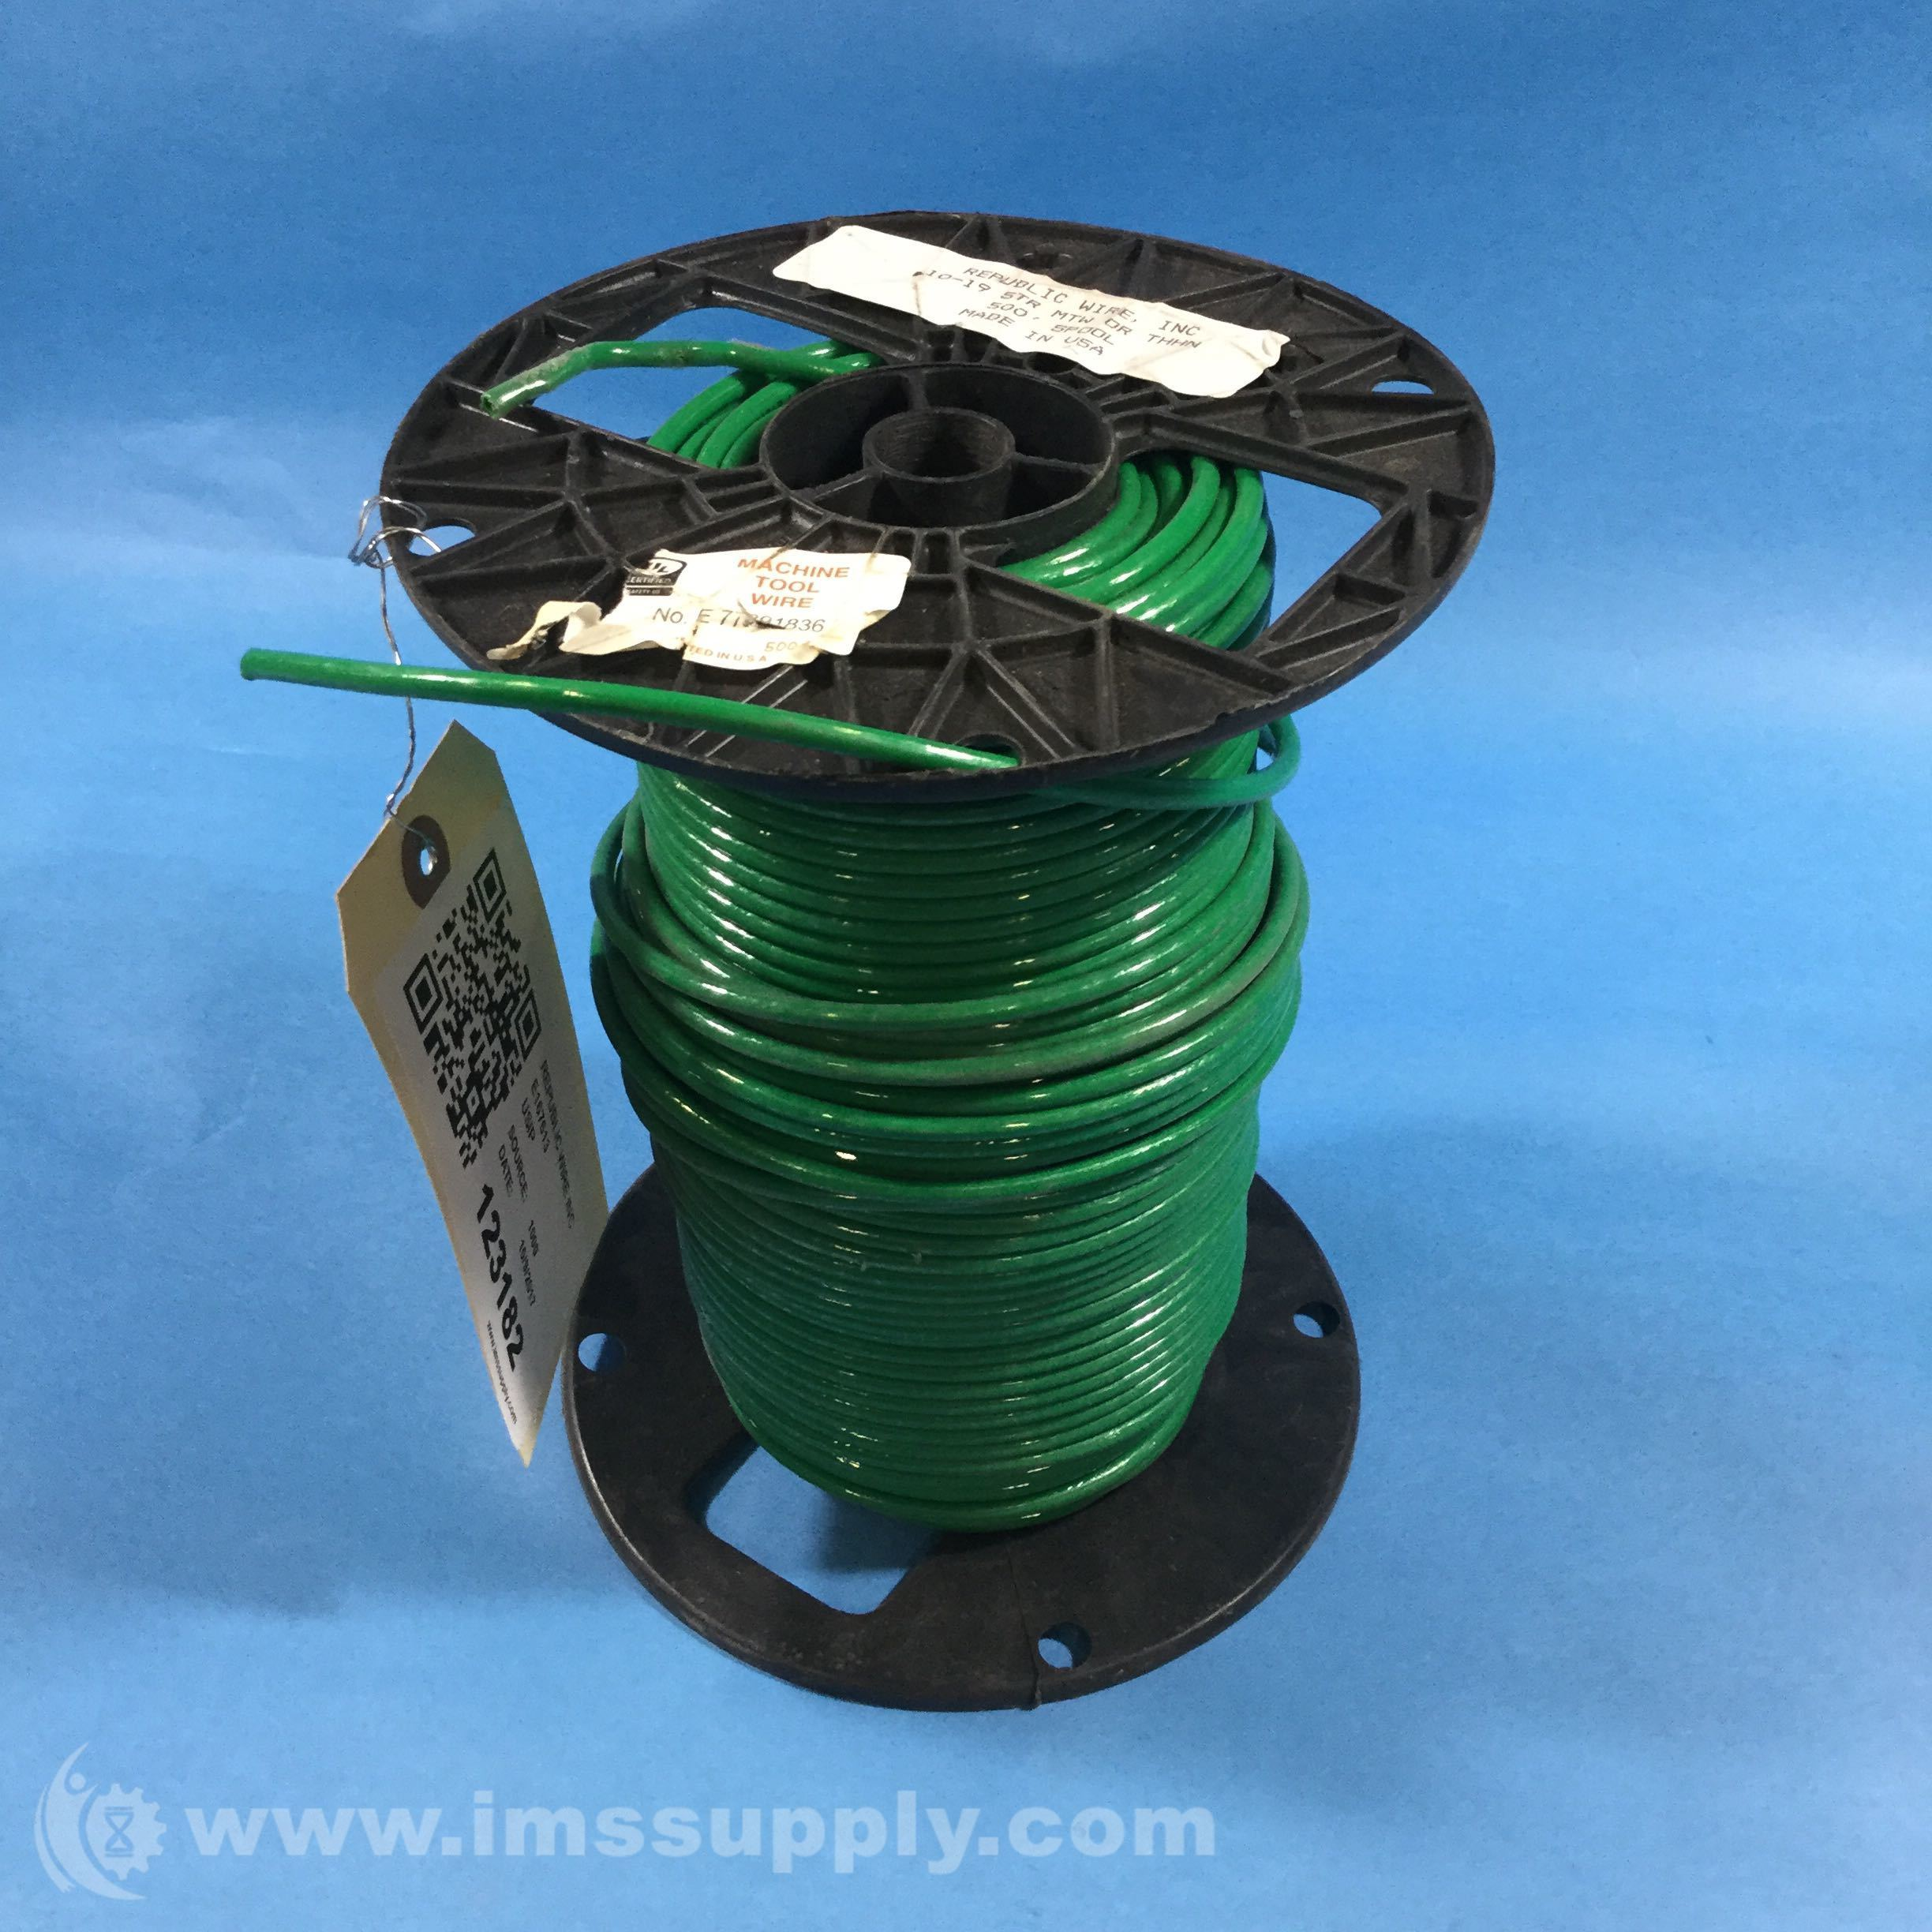 Republic Wire Inc E167613 Green, 10-19 STR MTW or THHN Wire Spool ...